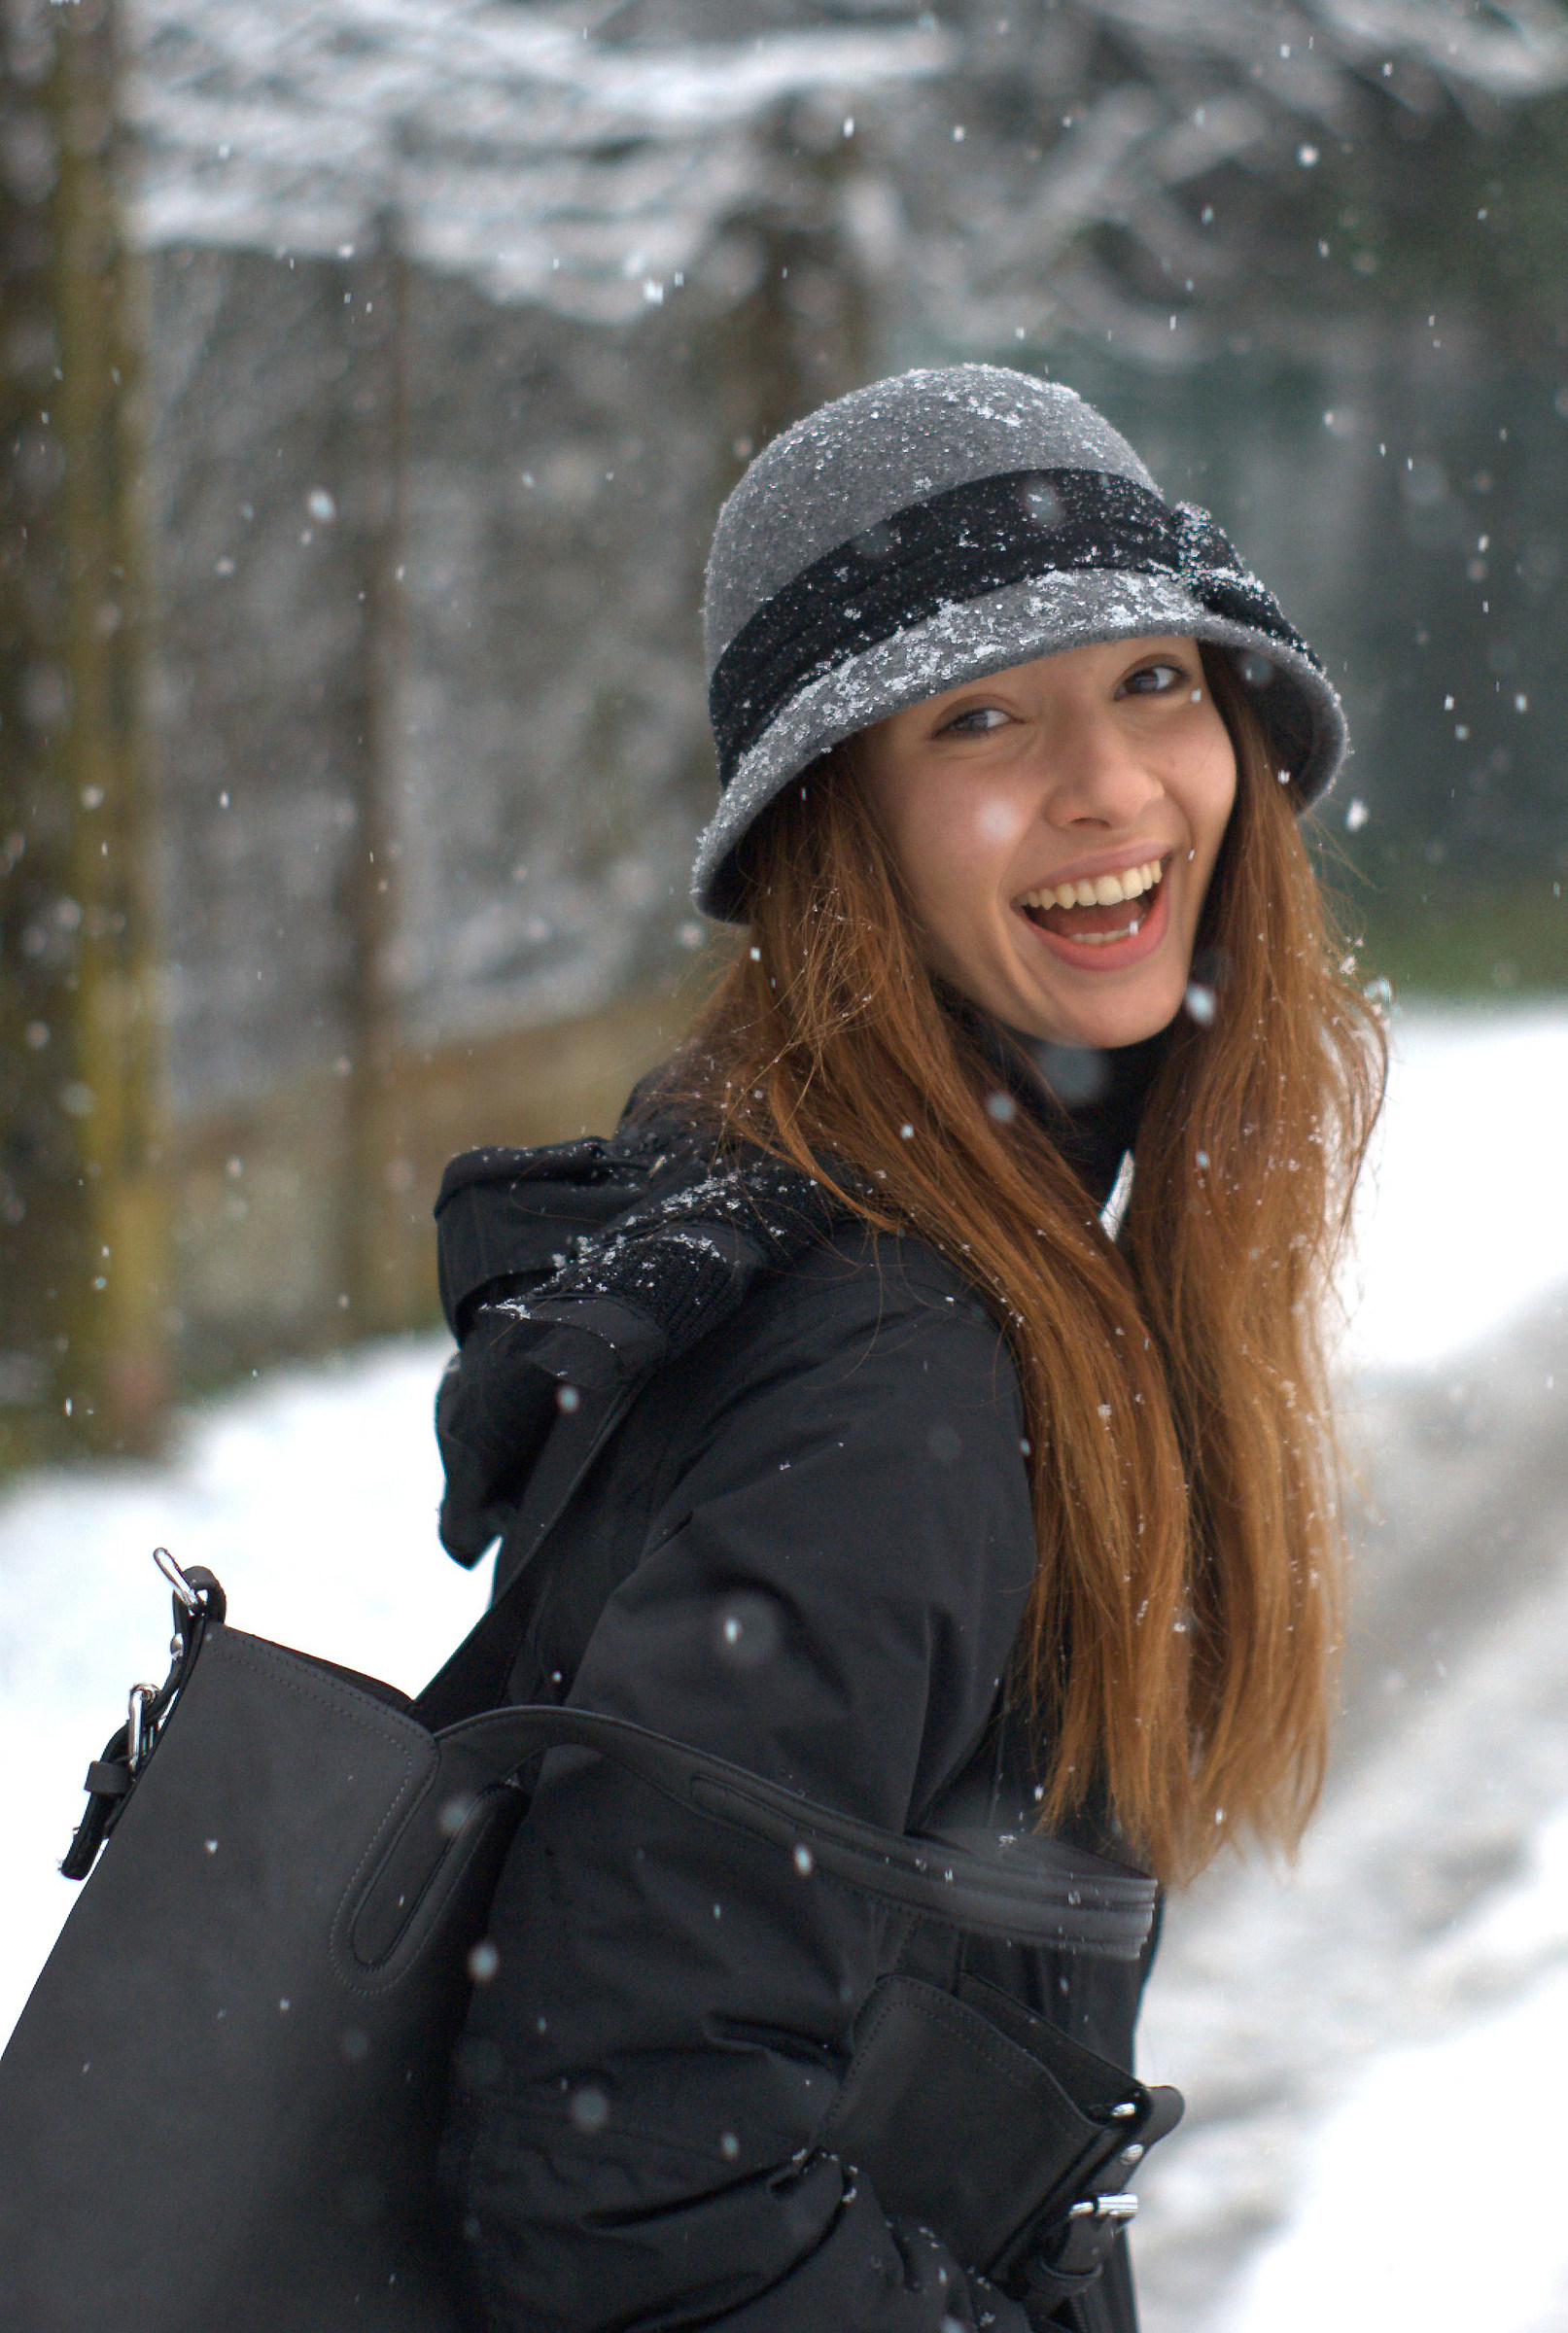 smile in the snow...